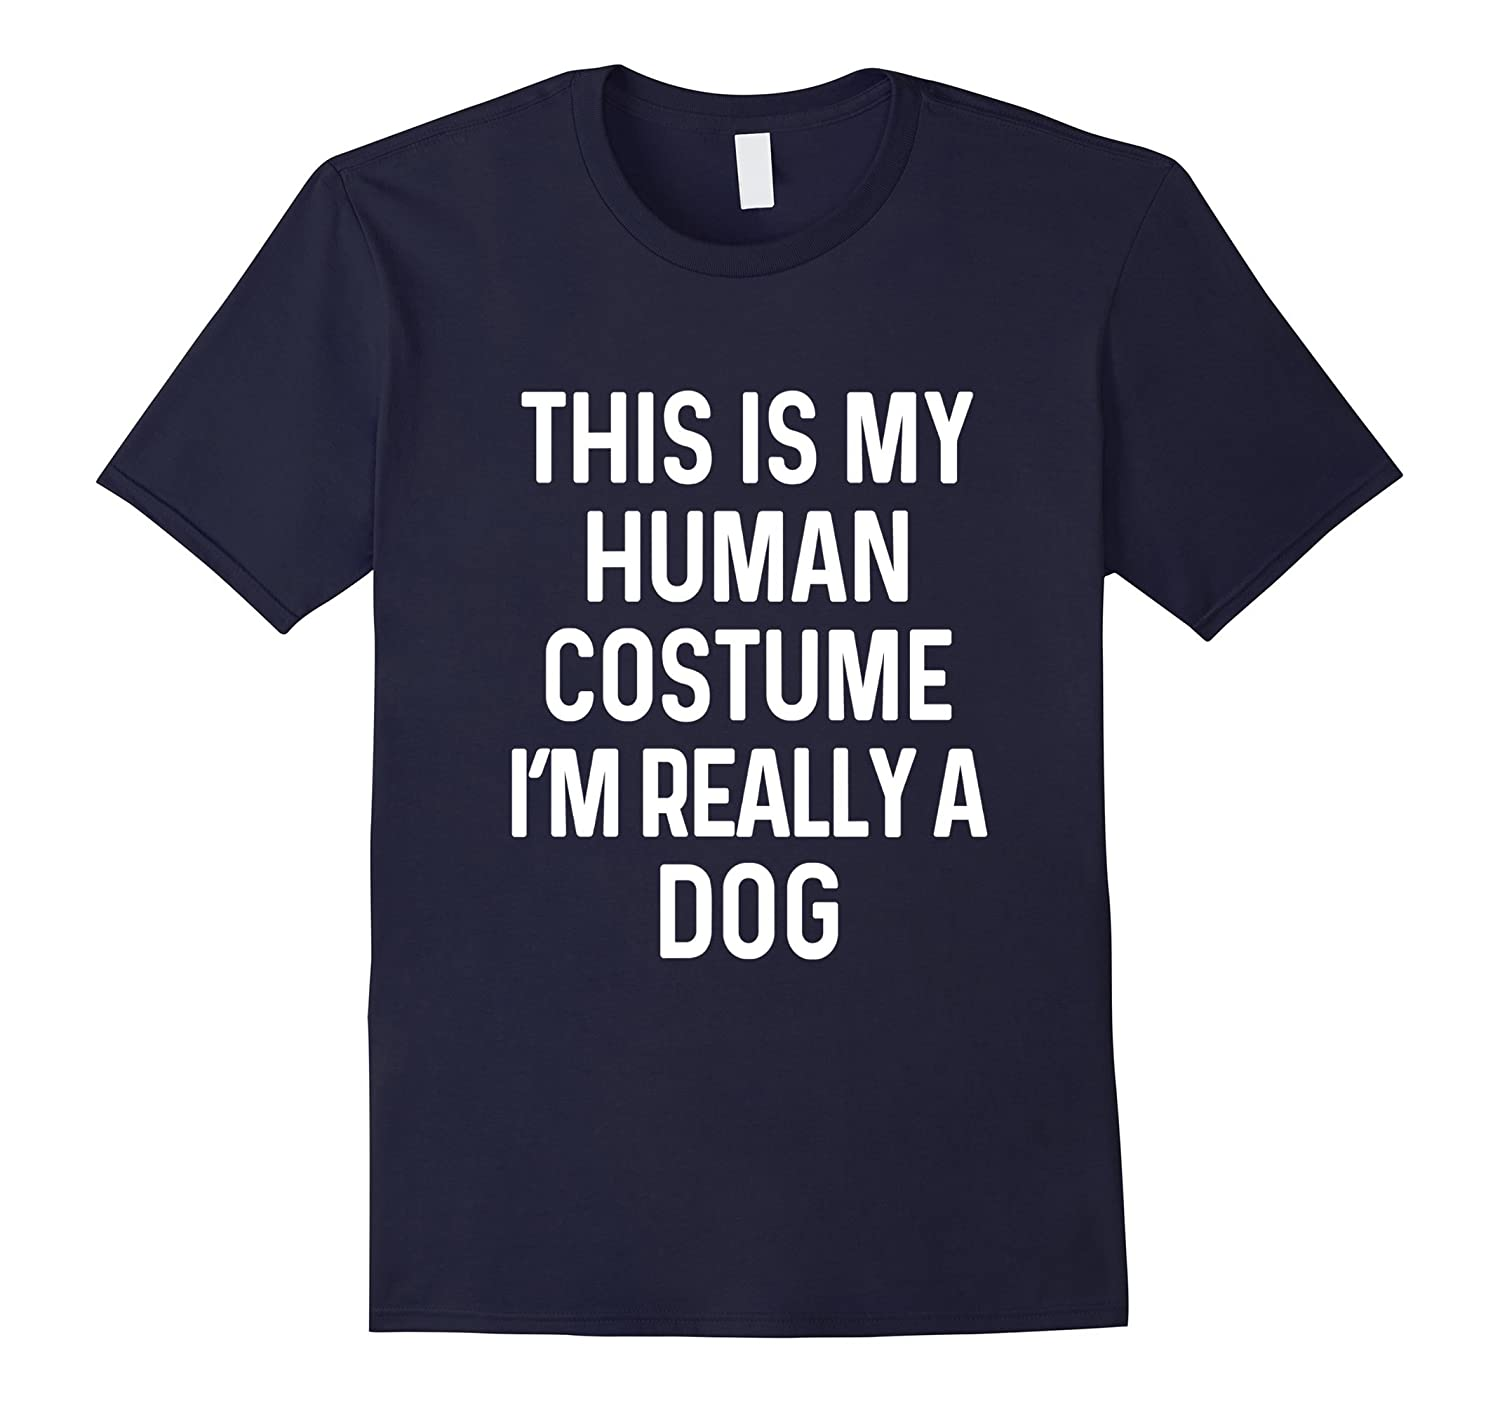 Funny Dog Costume Shirt Halloween Adults Kids Men Women-ANZ